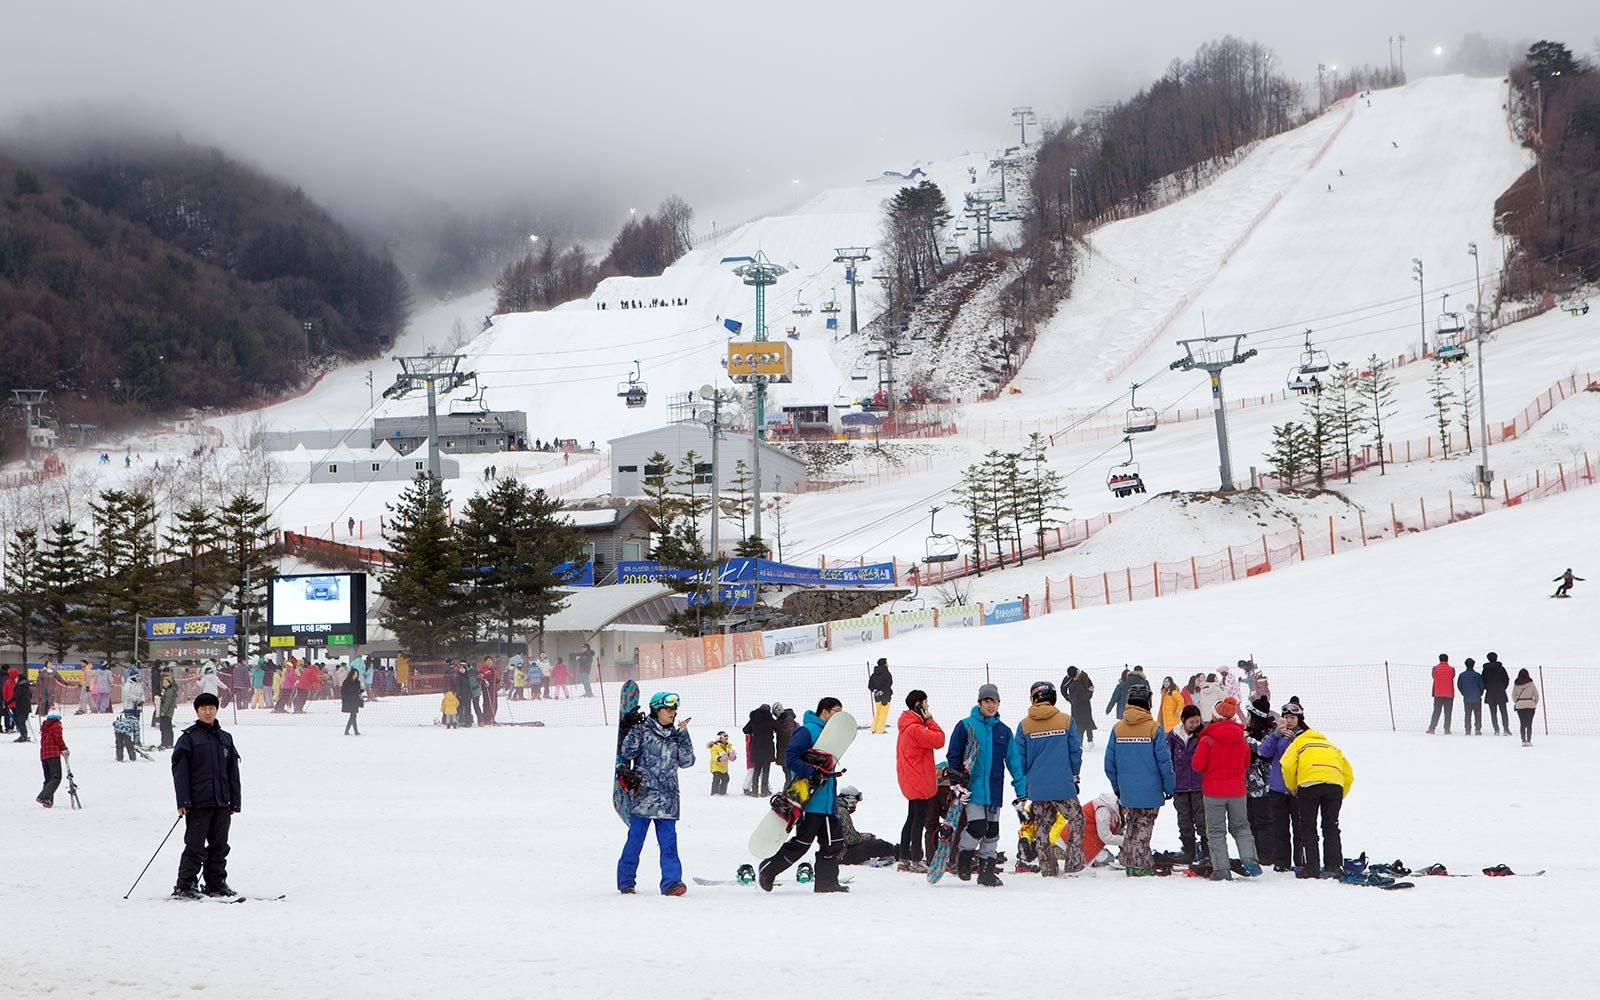 Pyeongchang South Korea